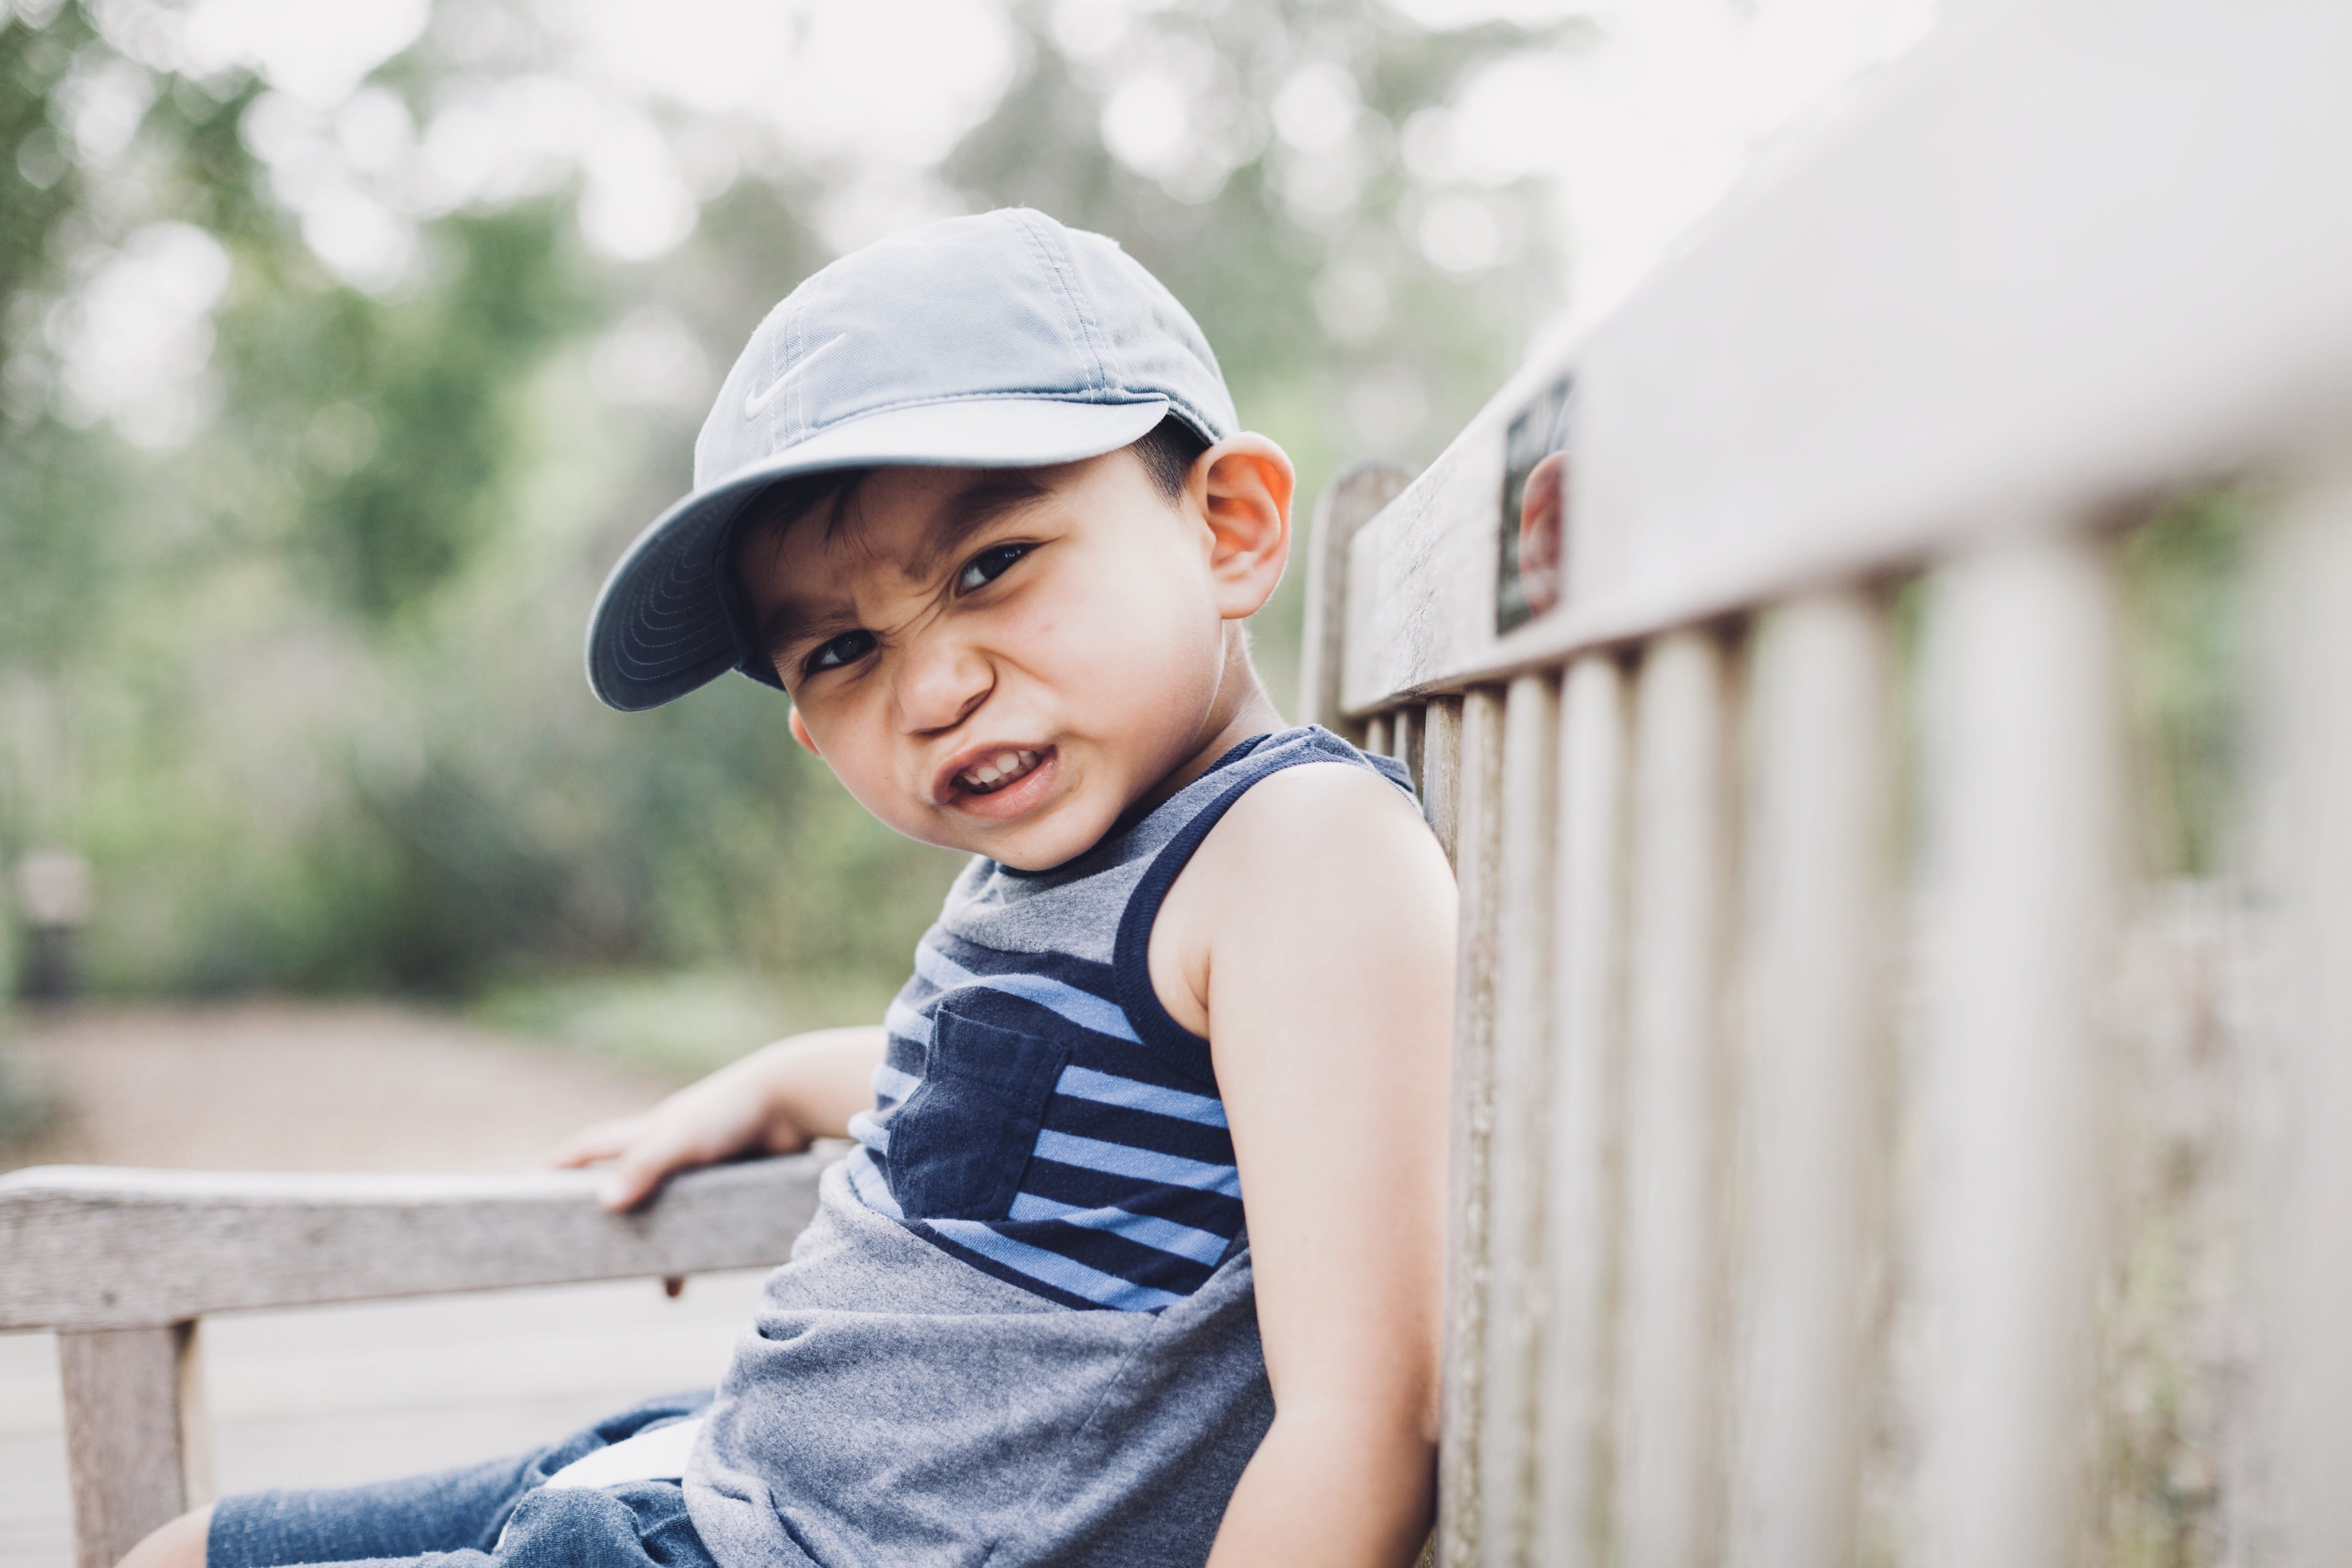 Shallow Focus Photography Of A Boy Sitting On Bench